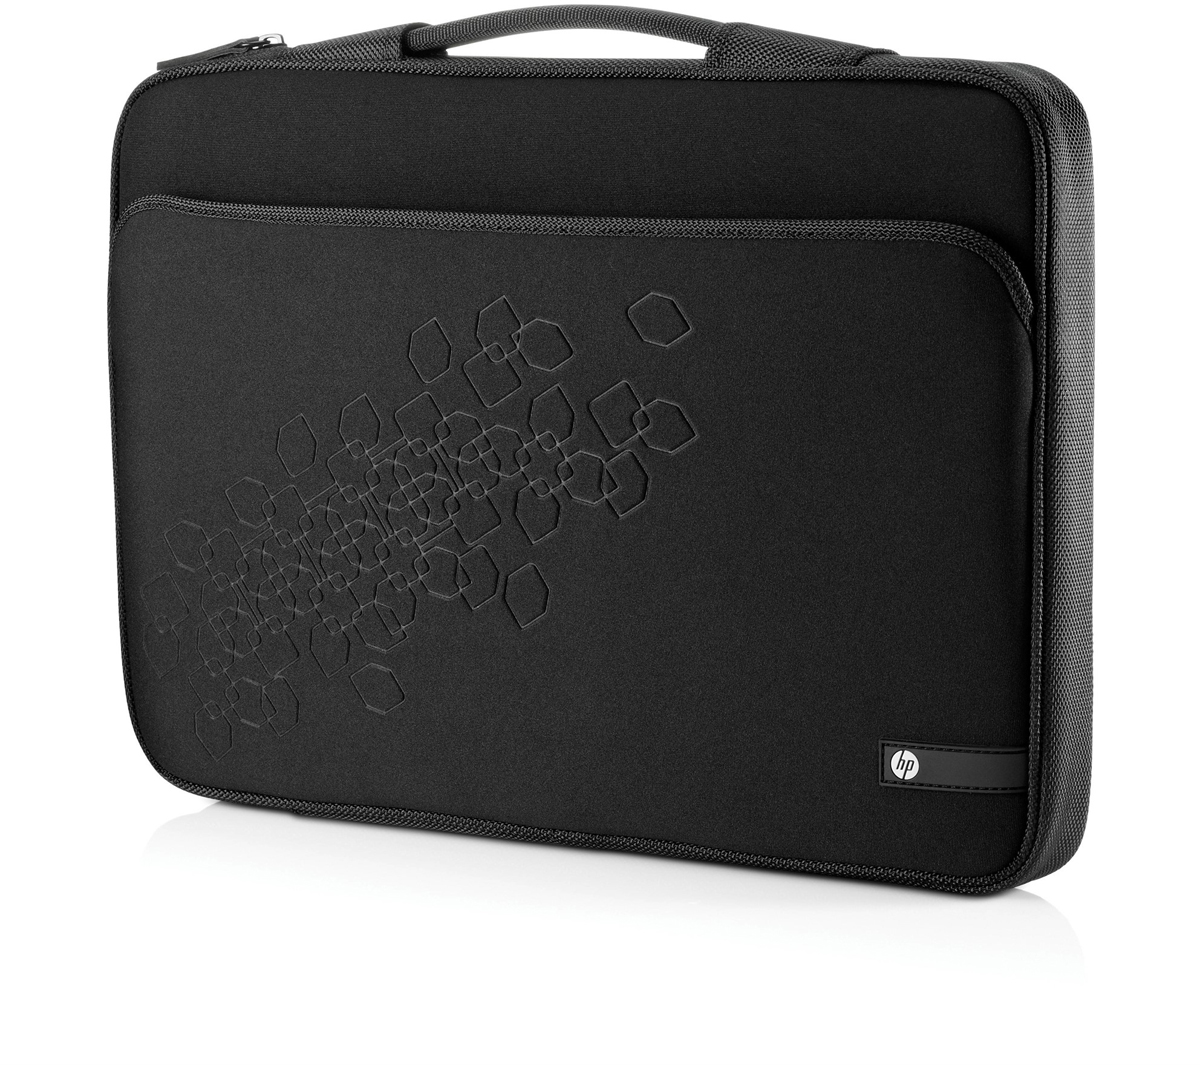 HP Black Cherry Notebook Sleeve чехол для ноутбука 17.3, Black (LR378AA)1000168251